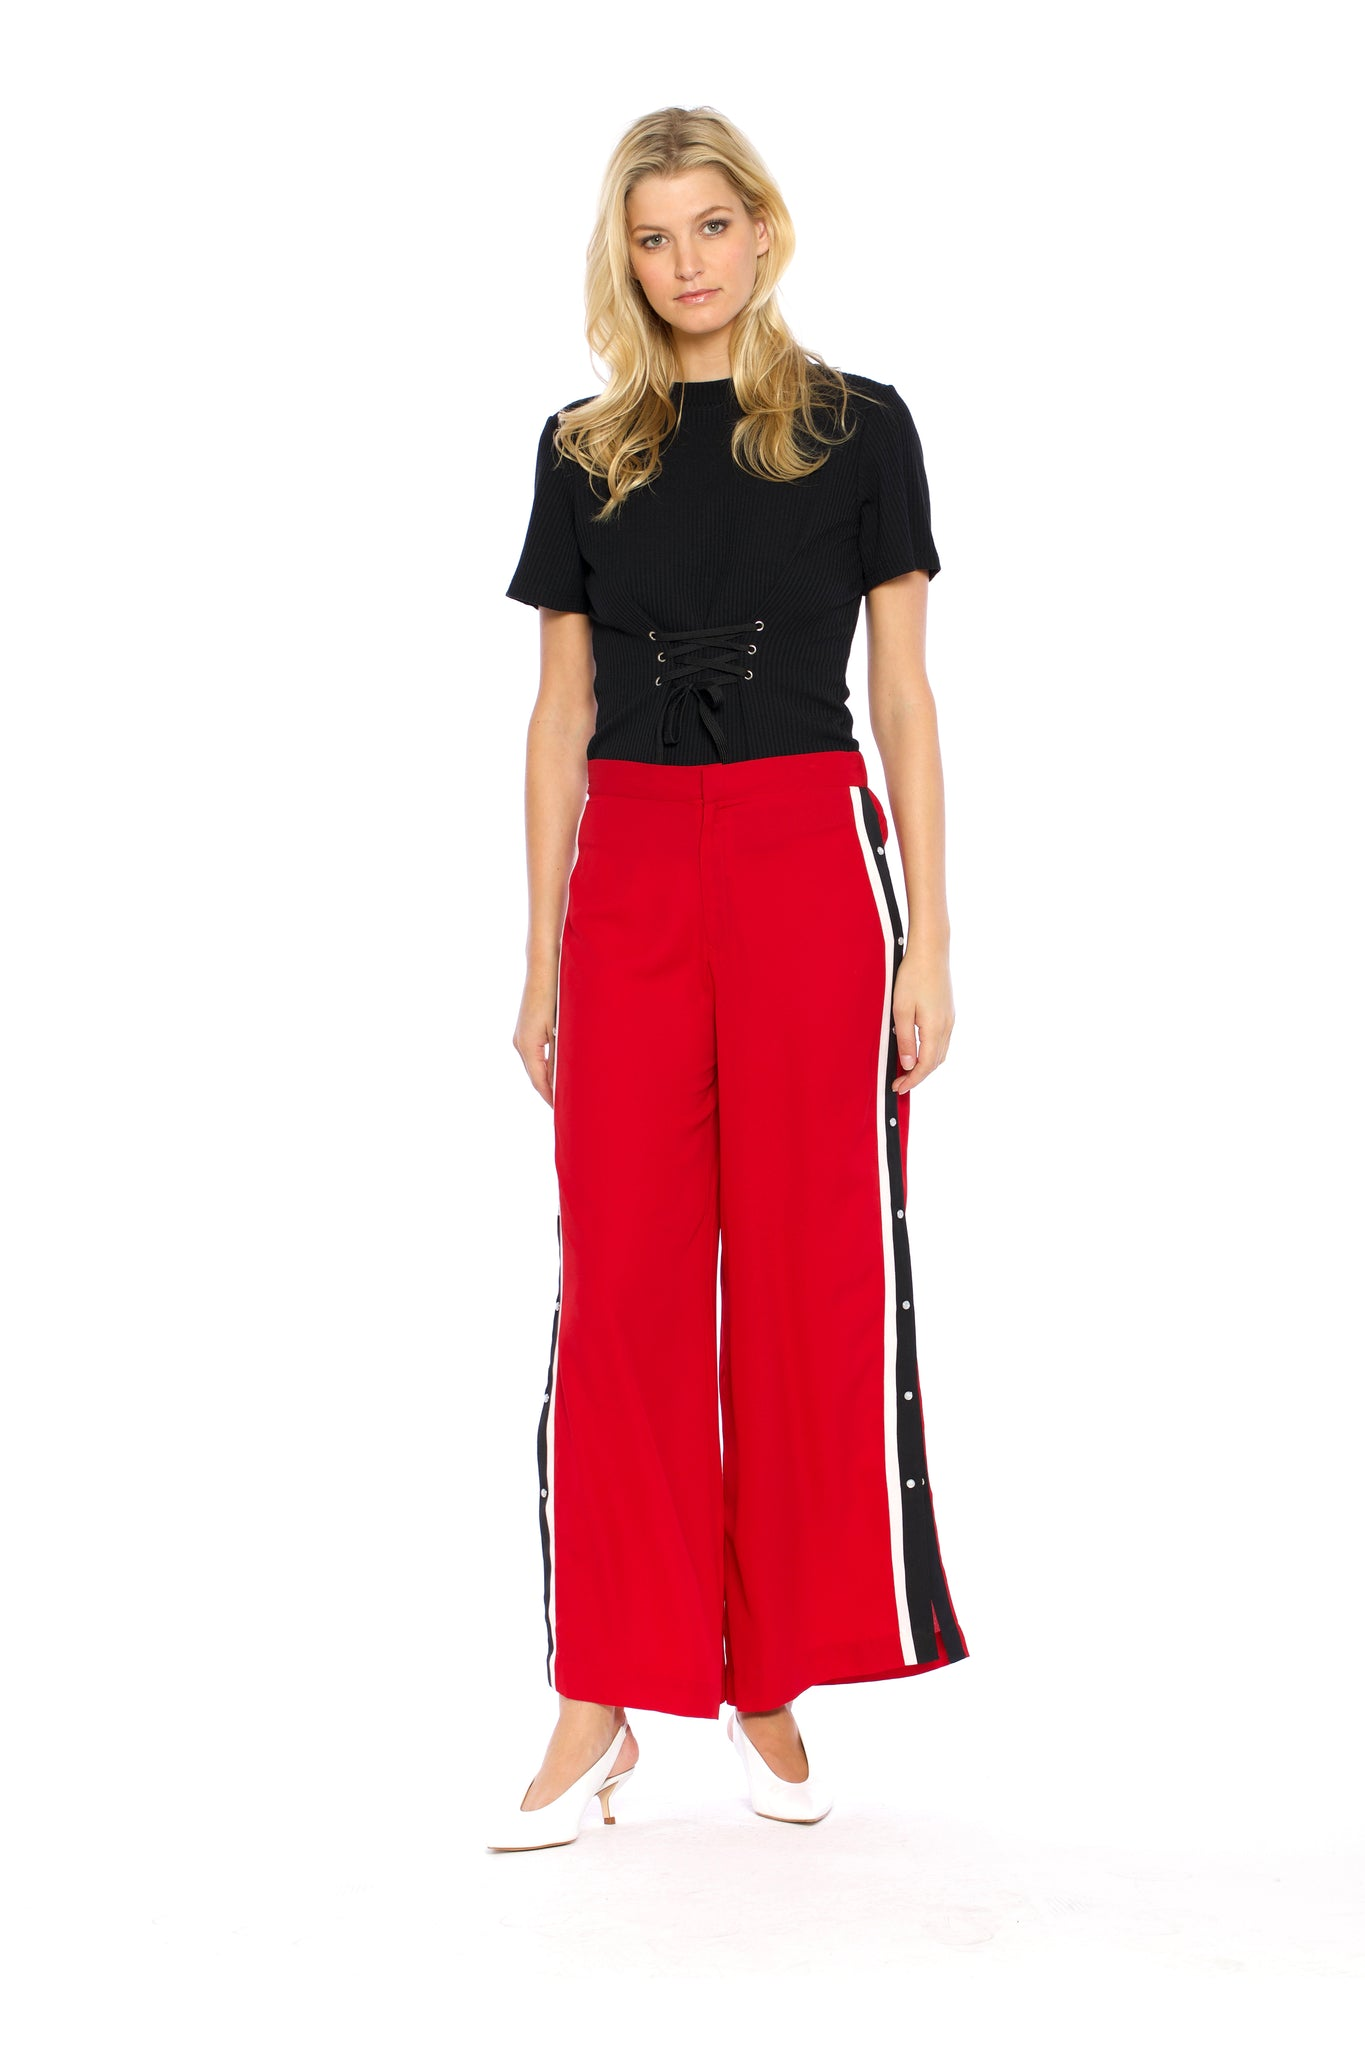 Front view of Maxine Pant, red retro pants with buttons on the side and a black stripe outlined with white borders on both sides, 100% Polyester and Machine-washable.